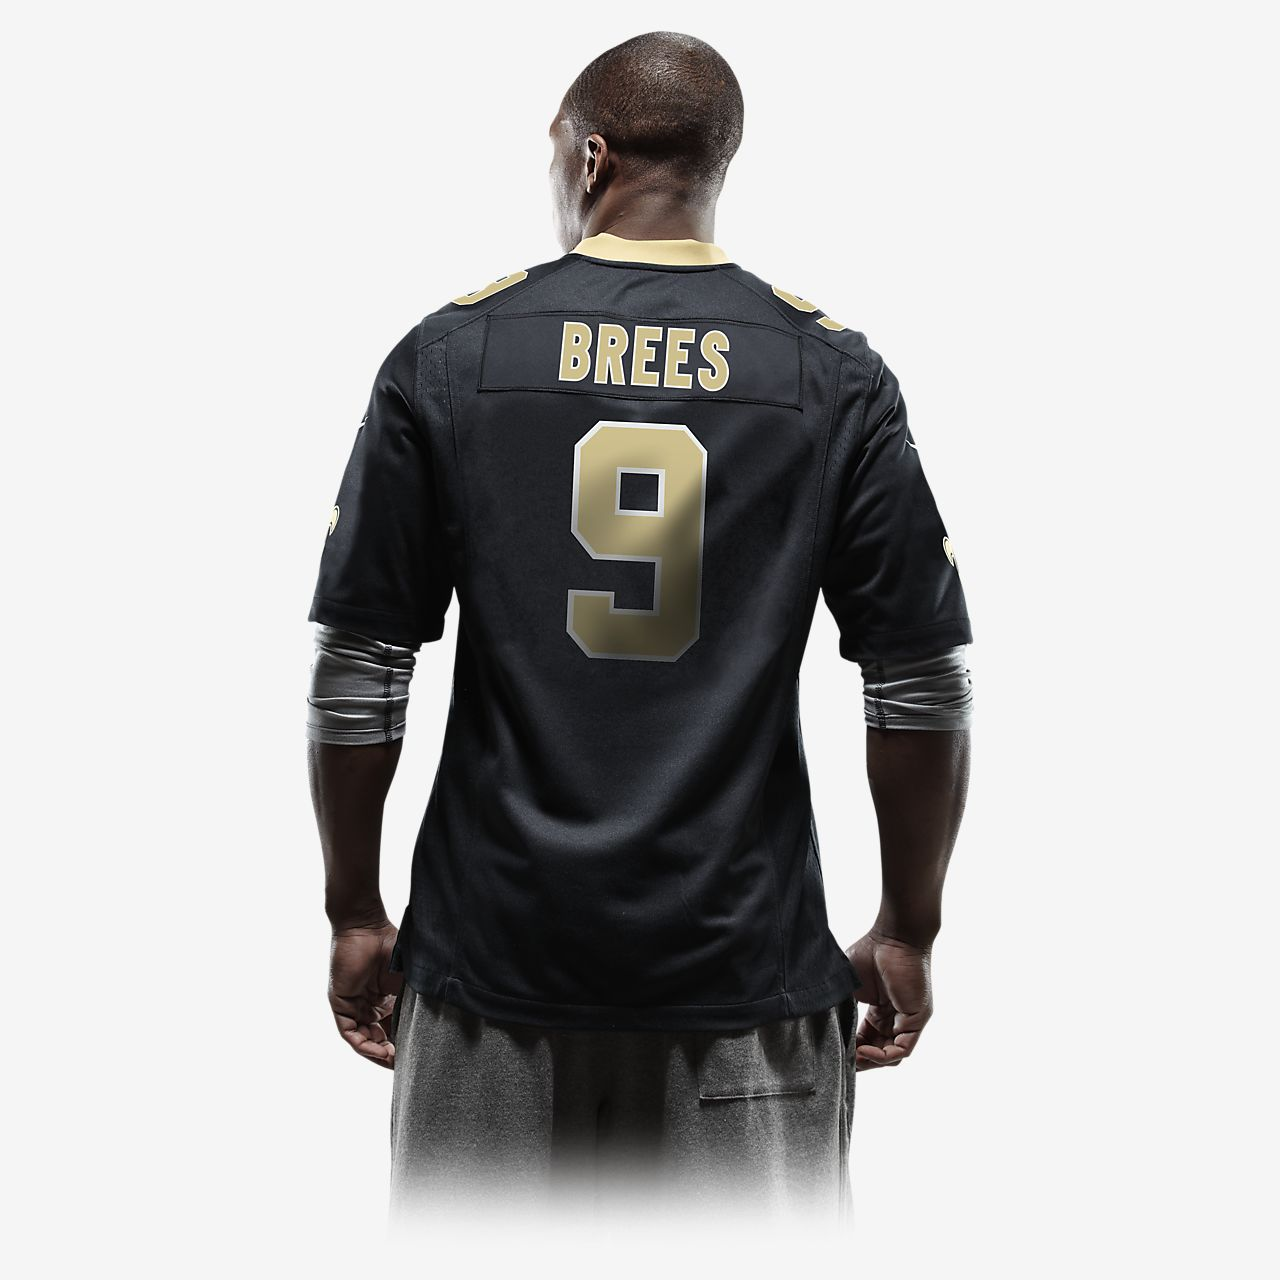 97b798b8857 ... NFL New Orleans Saints (Drew Brees) Men's American Football Home Game  Jersey